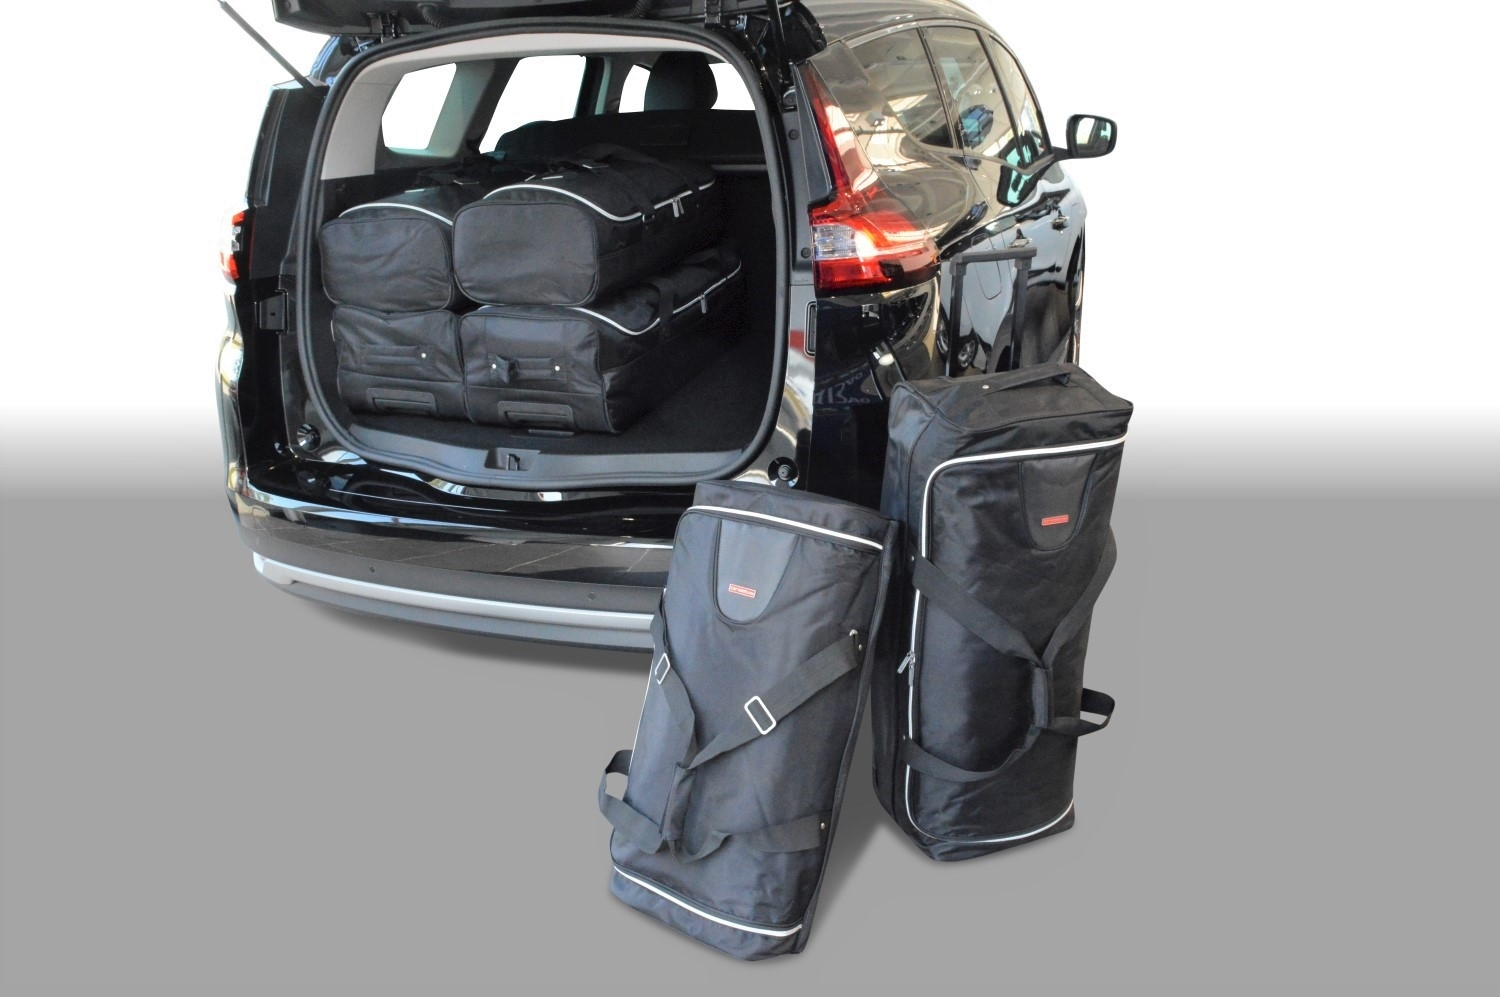 100 renault grand scenic luggage capacity renault. Black Bedroom Furniture Sets. Home Design Ideas